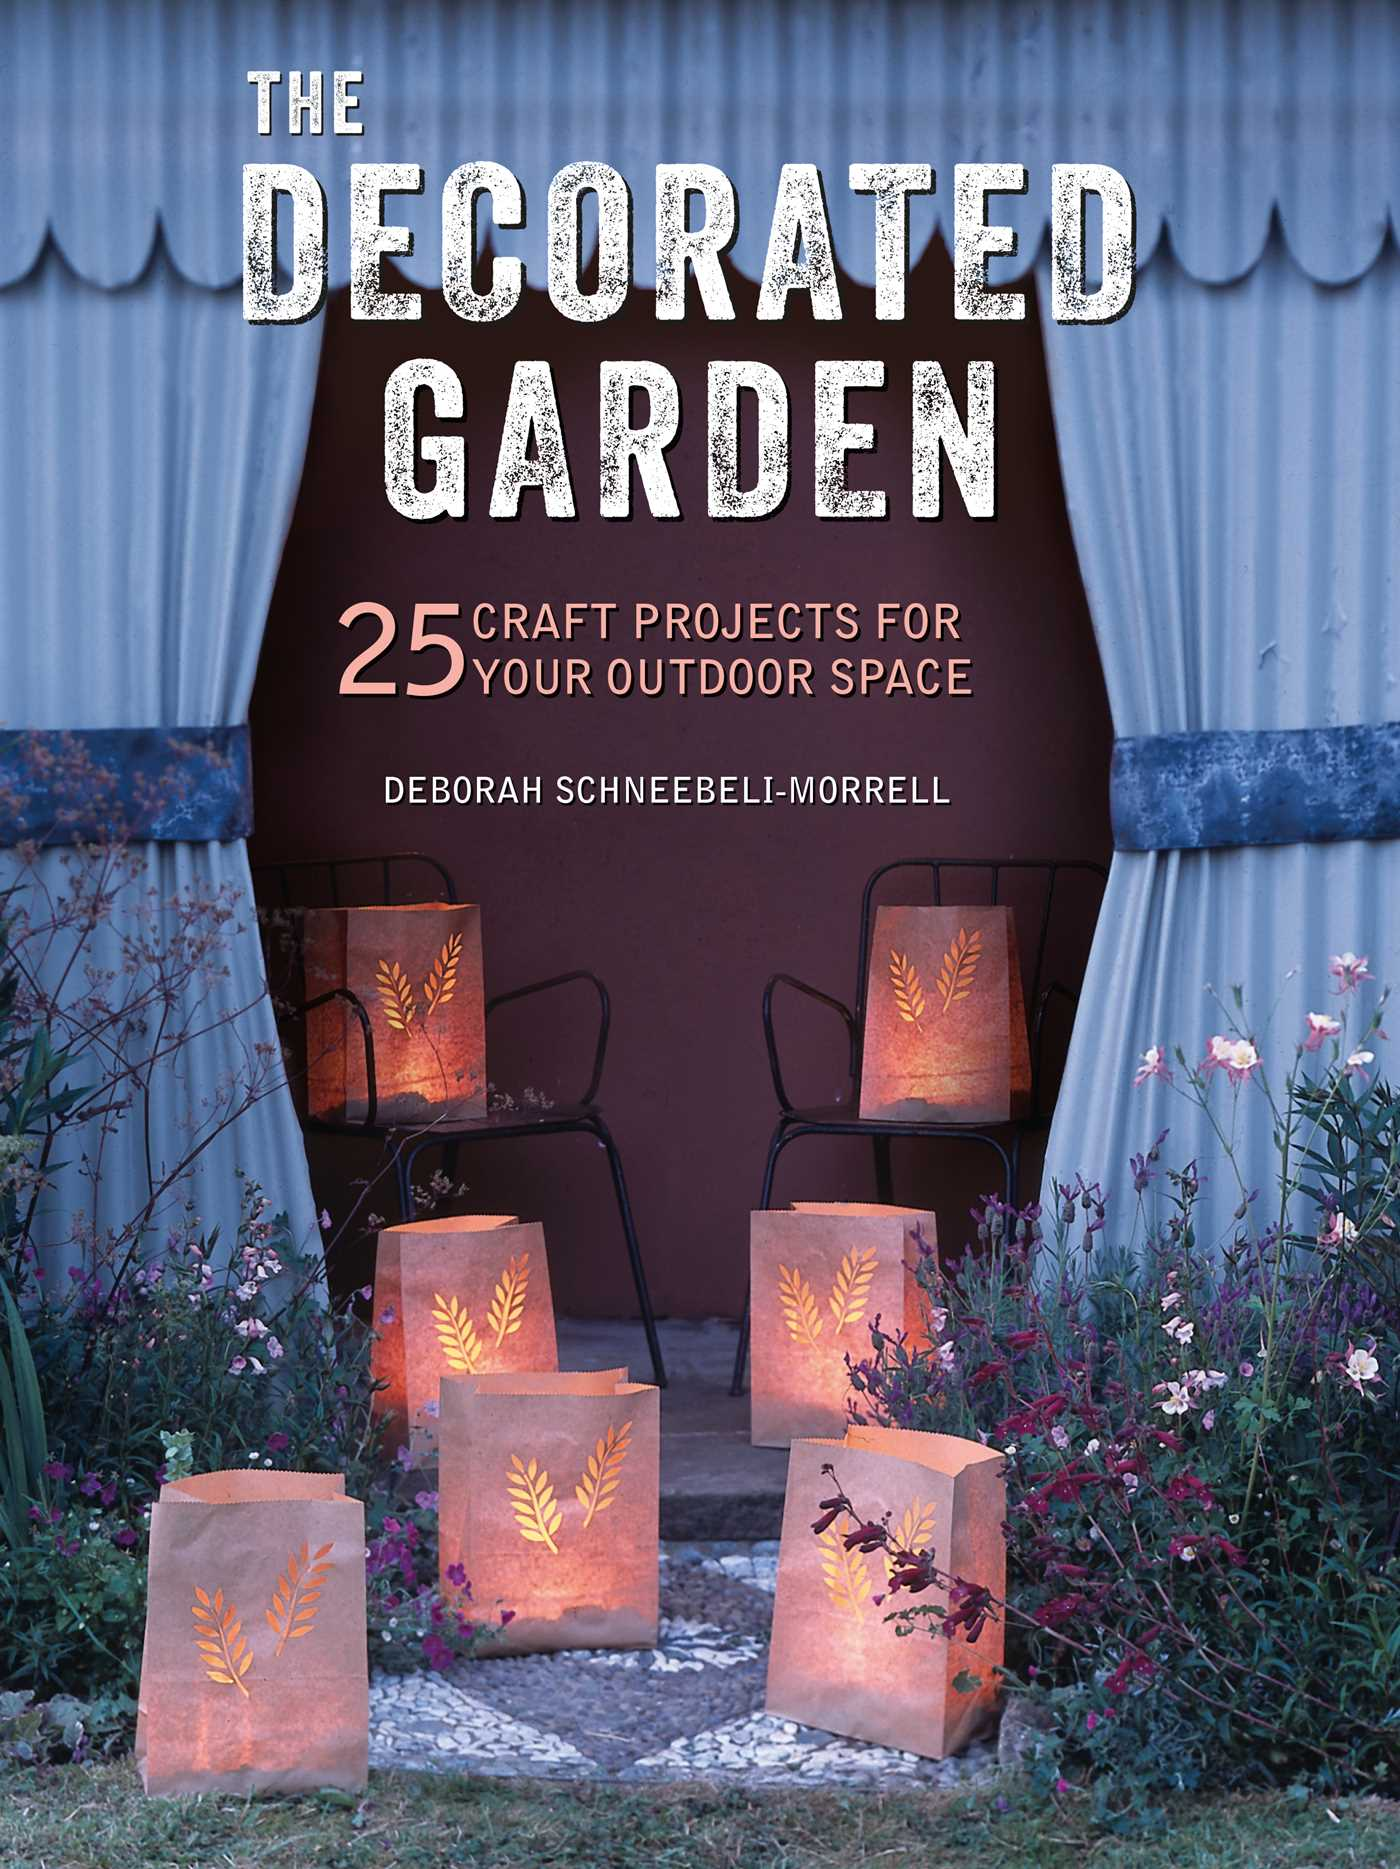 The decorated garden 9781782495536 hr